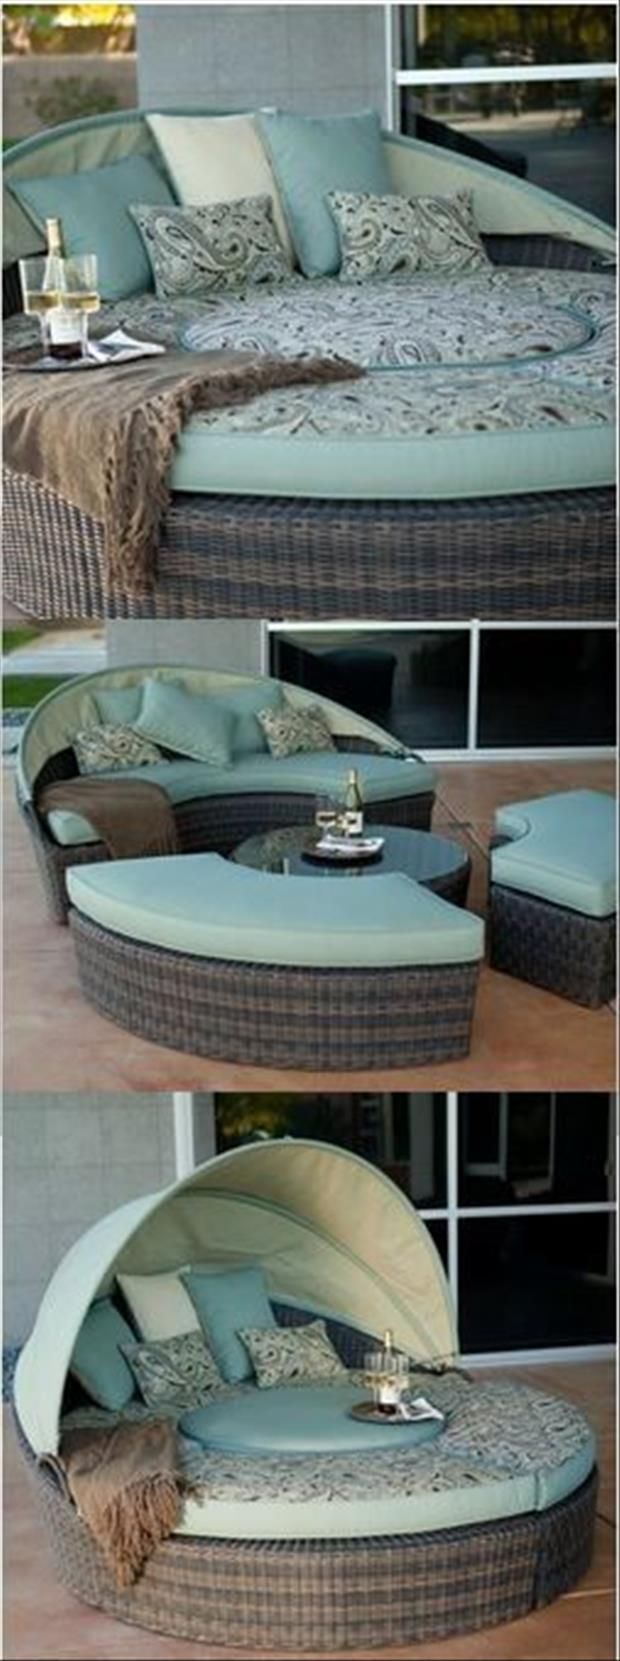 the deck bed